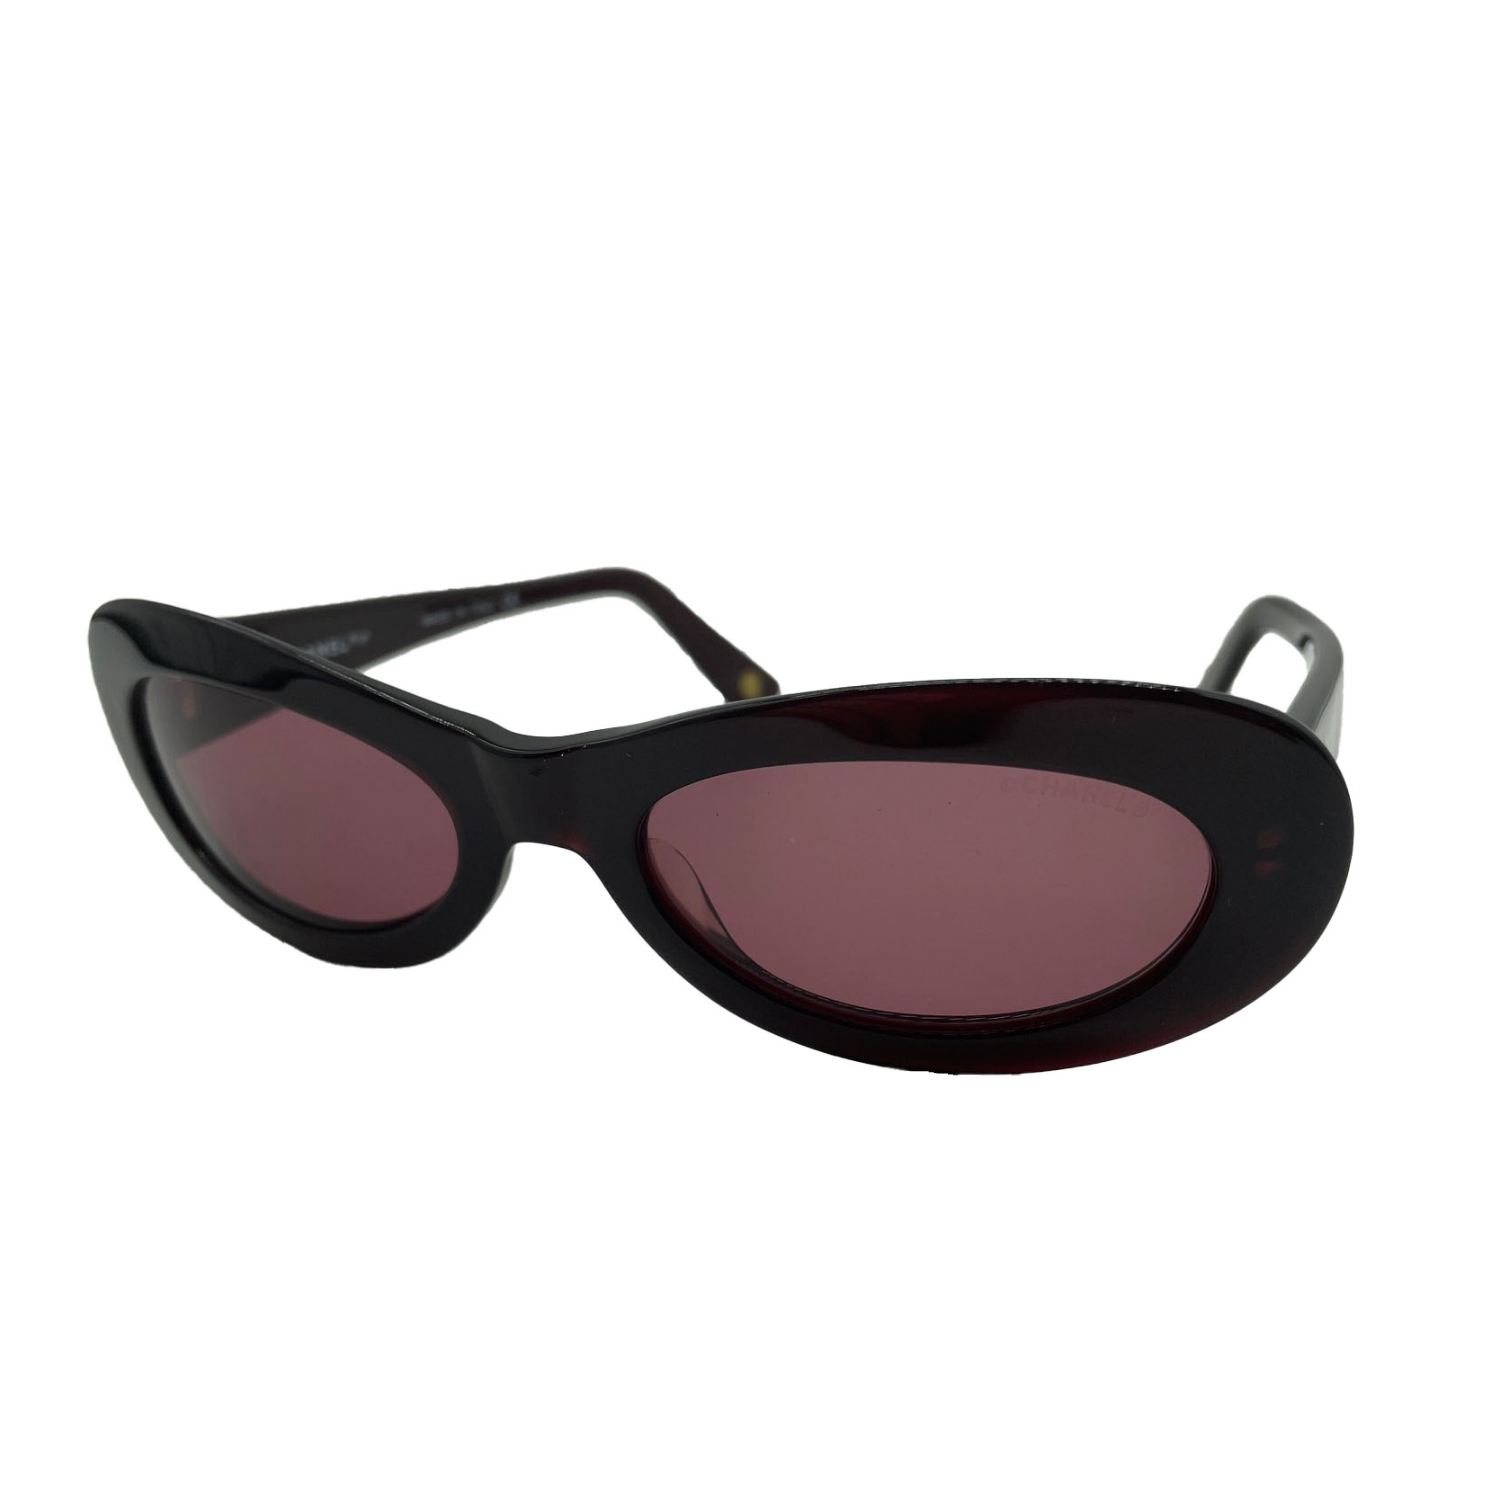 Vintage Chanel Chunky Oval Sunglasses in Maroon/Brown | NITRYL